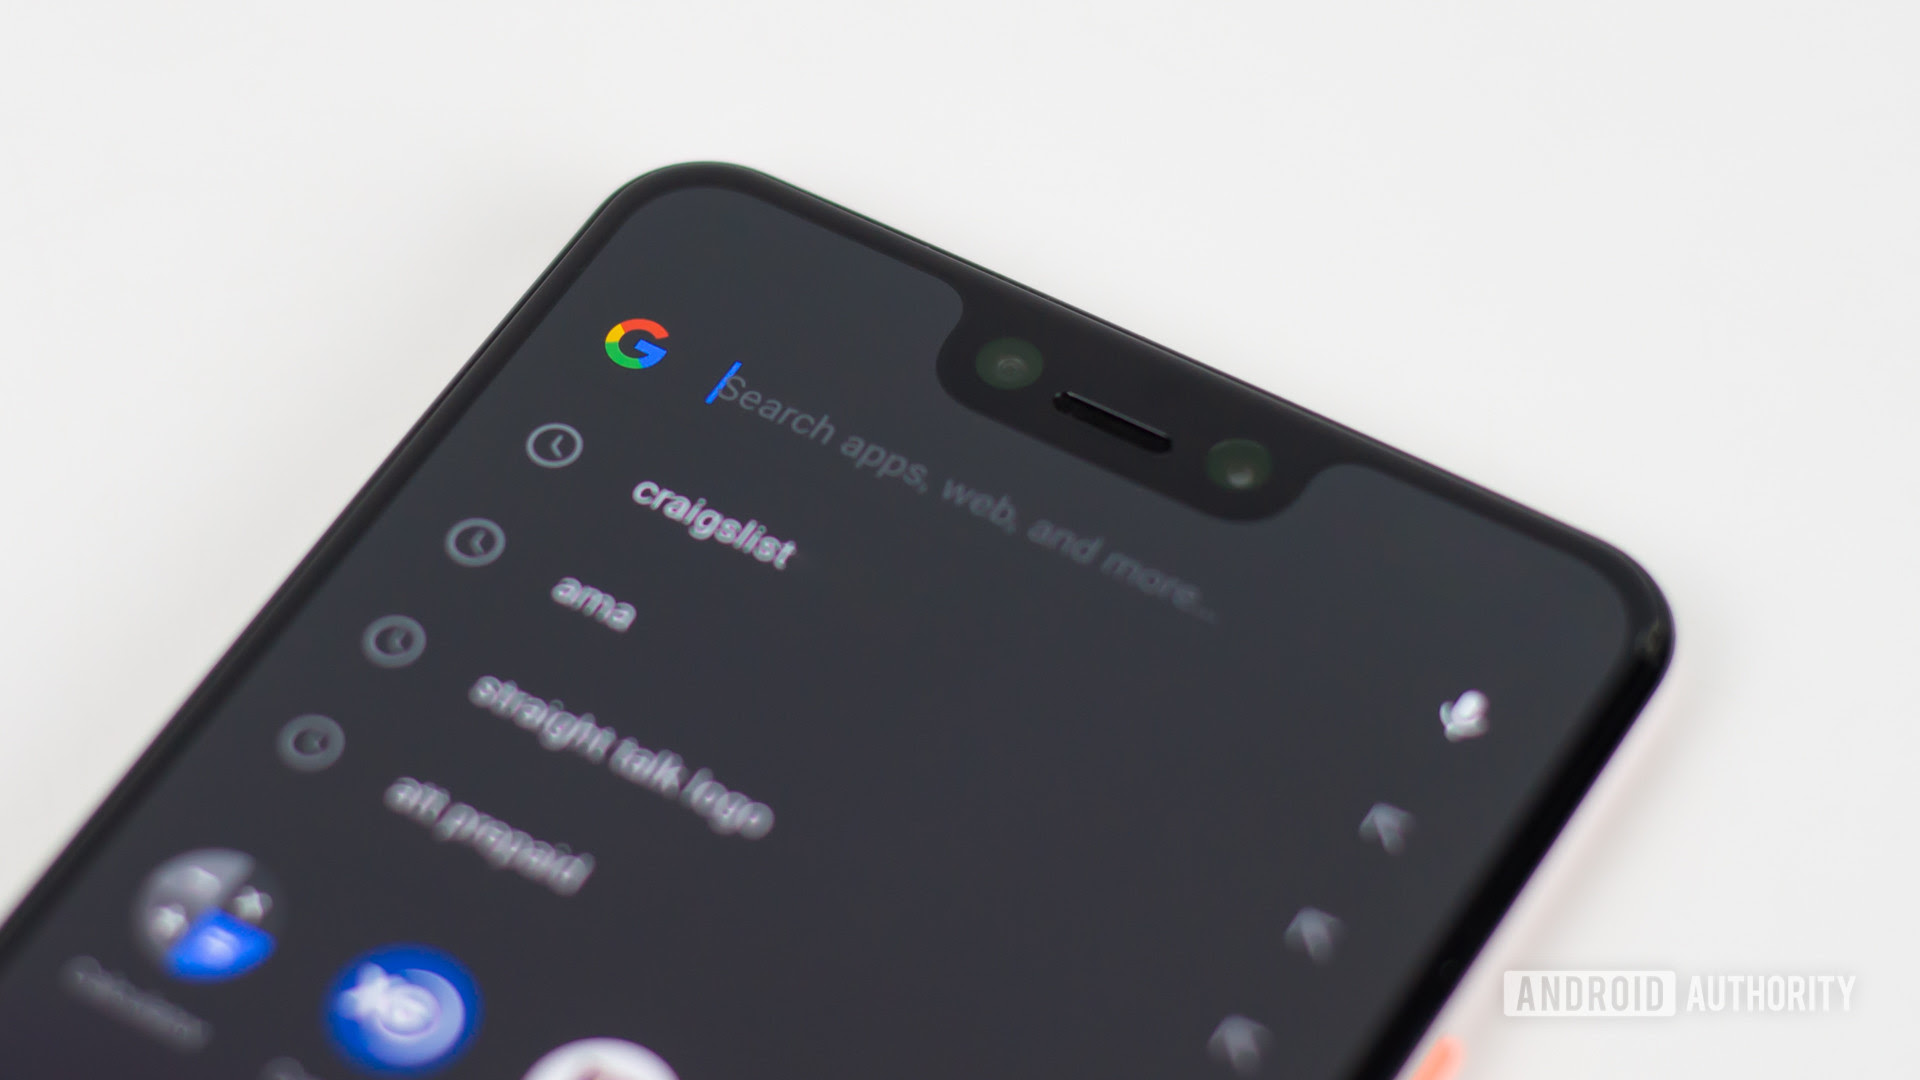 Google Search on mobile just got its biggest change in years